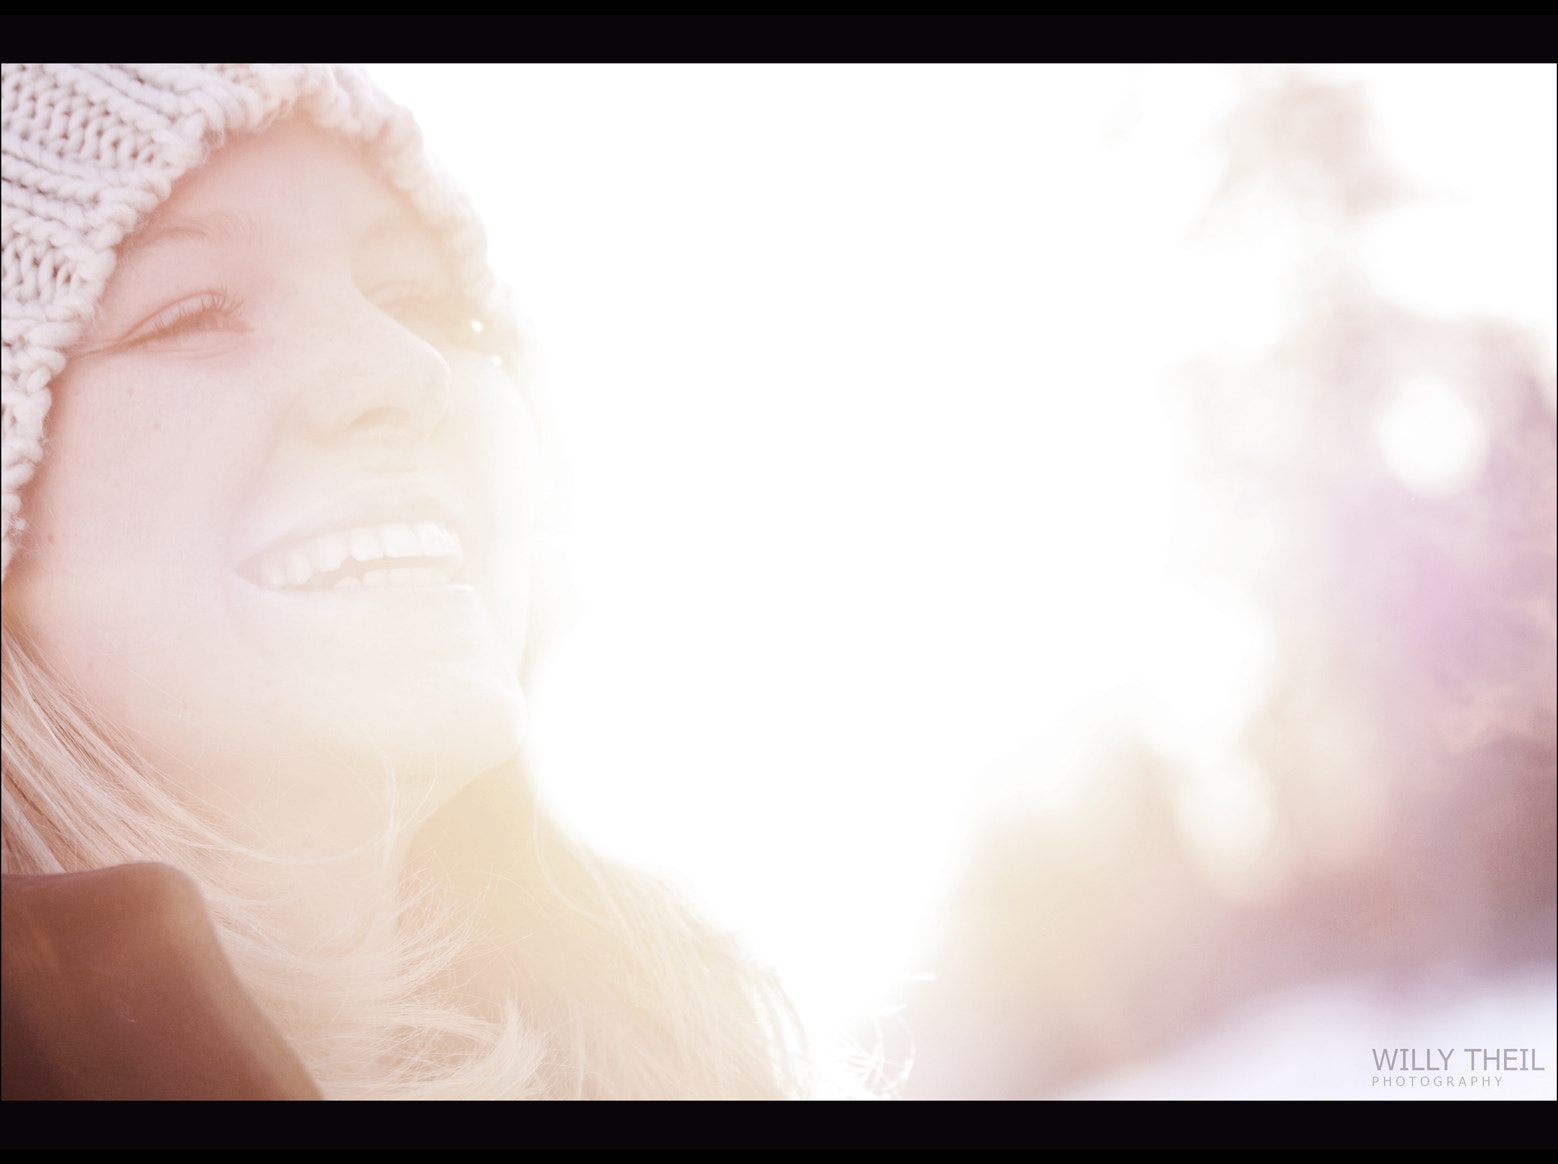 Photograph Elisa laughing by Willy Theil on 500px